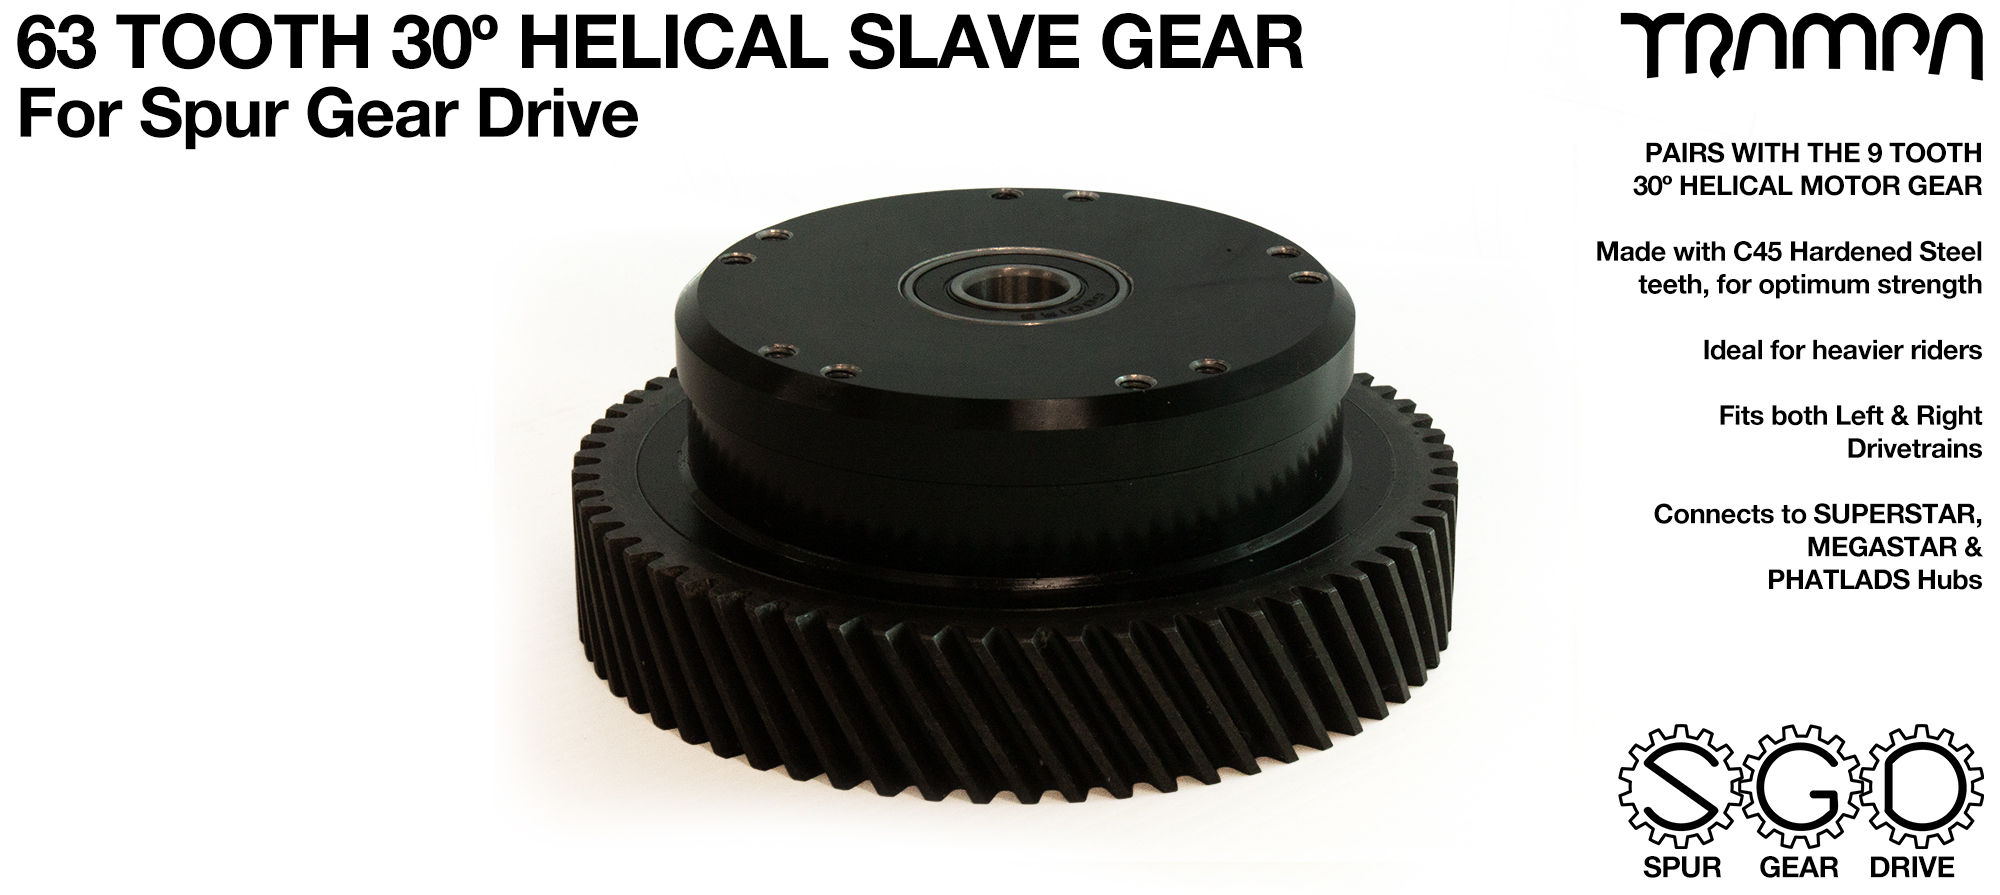 Spur Gear Drive 63 Tooth 30º HELICAL Slave Pulley - c45 Heat Treated Hardened Steel Black Anodised